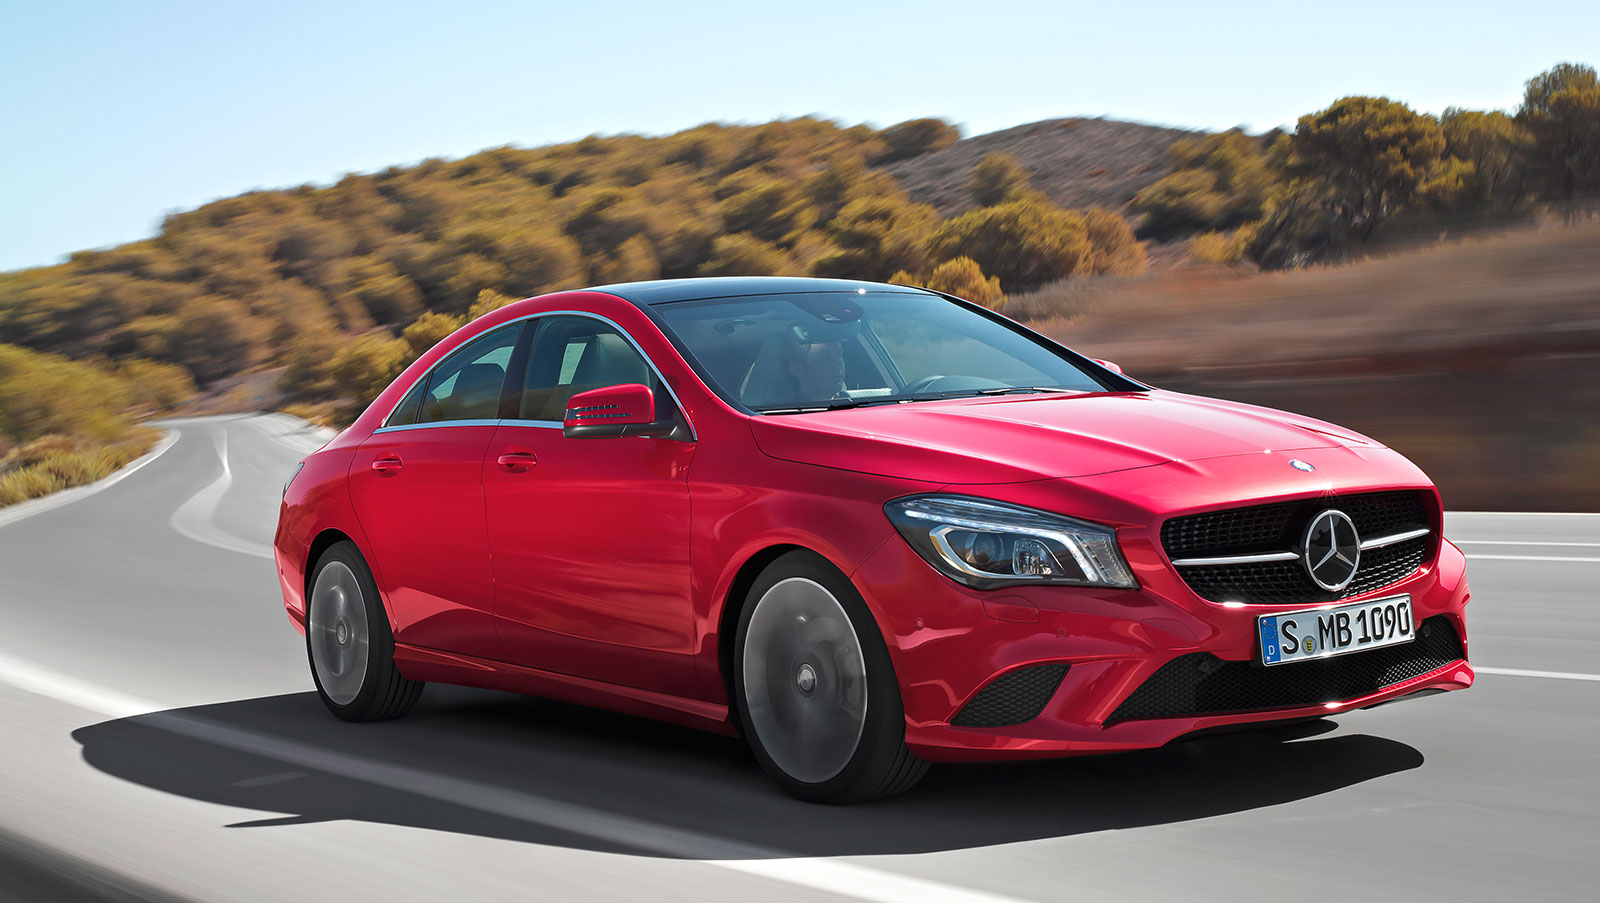 2015 mercedes benz cla new model year updates for Mercedes benz new model